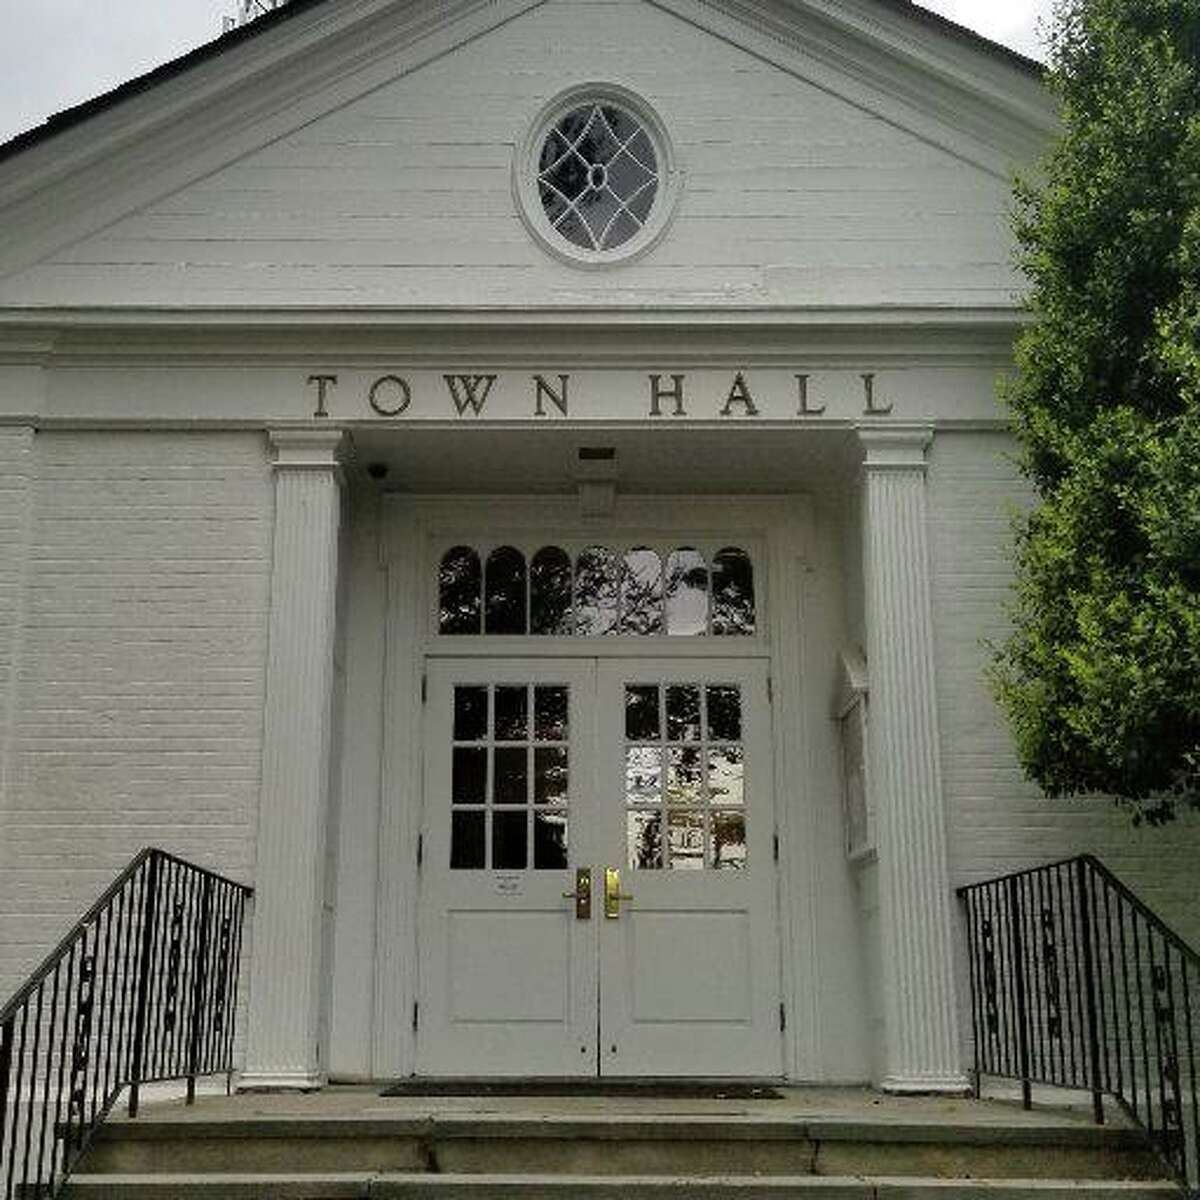 Weston Town Hall at 56 Norfield Road in Weston.